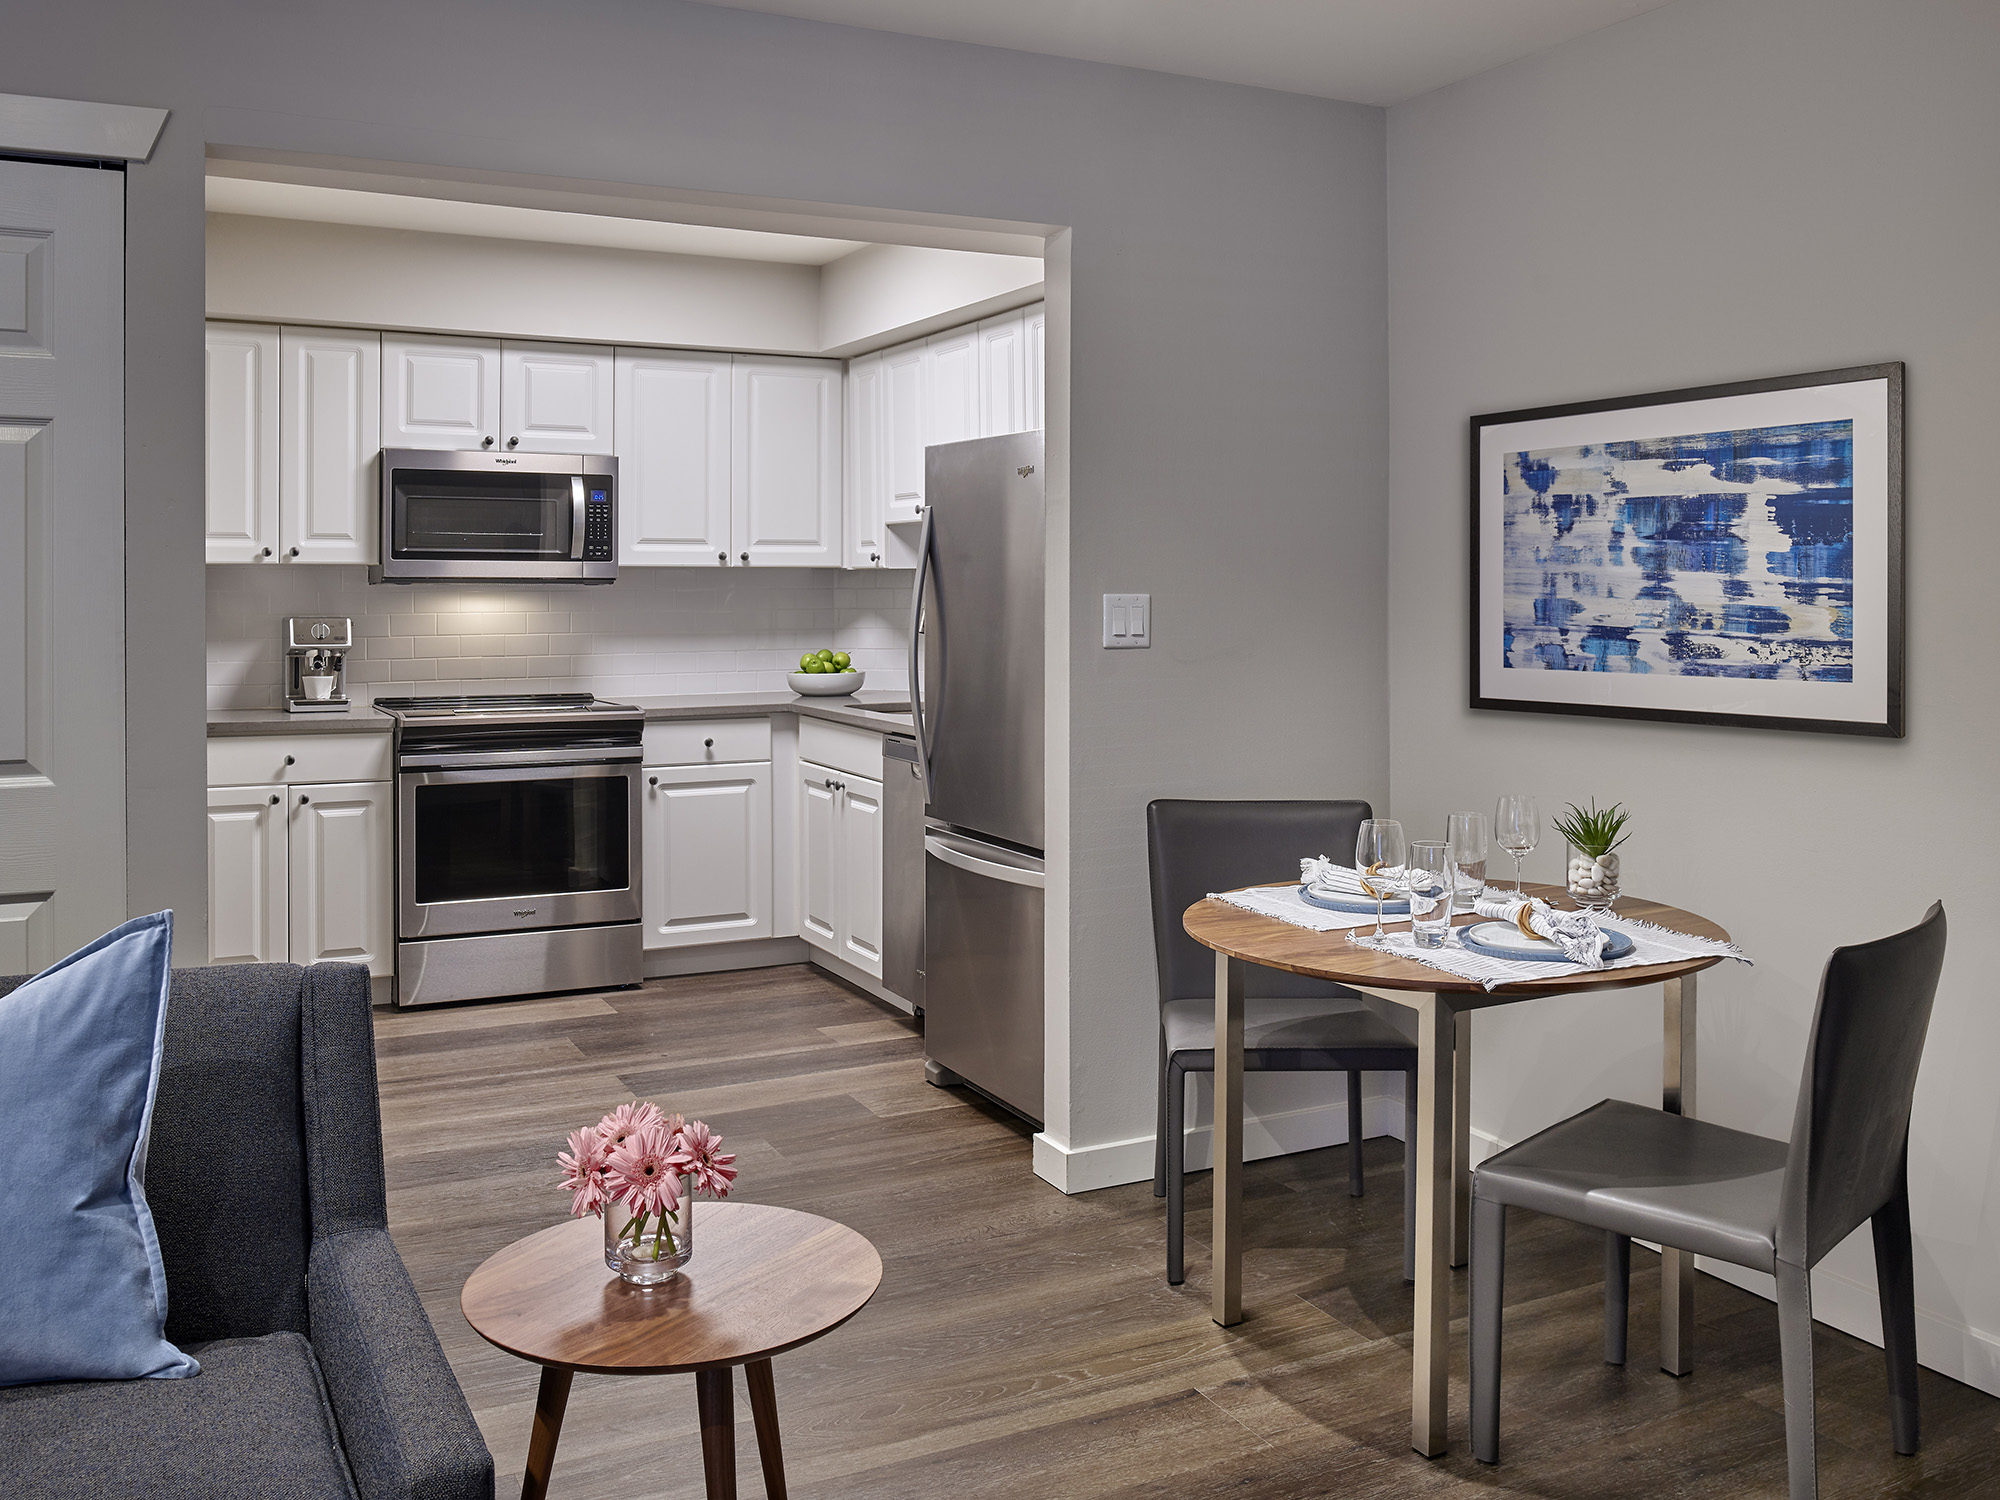 Apartment kitchen with dining table in Blue Bell Villas